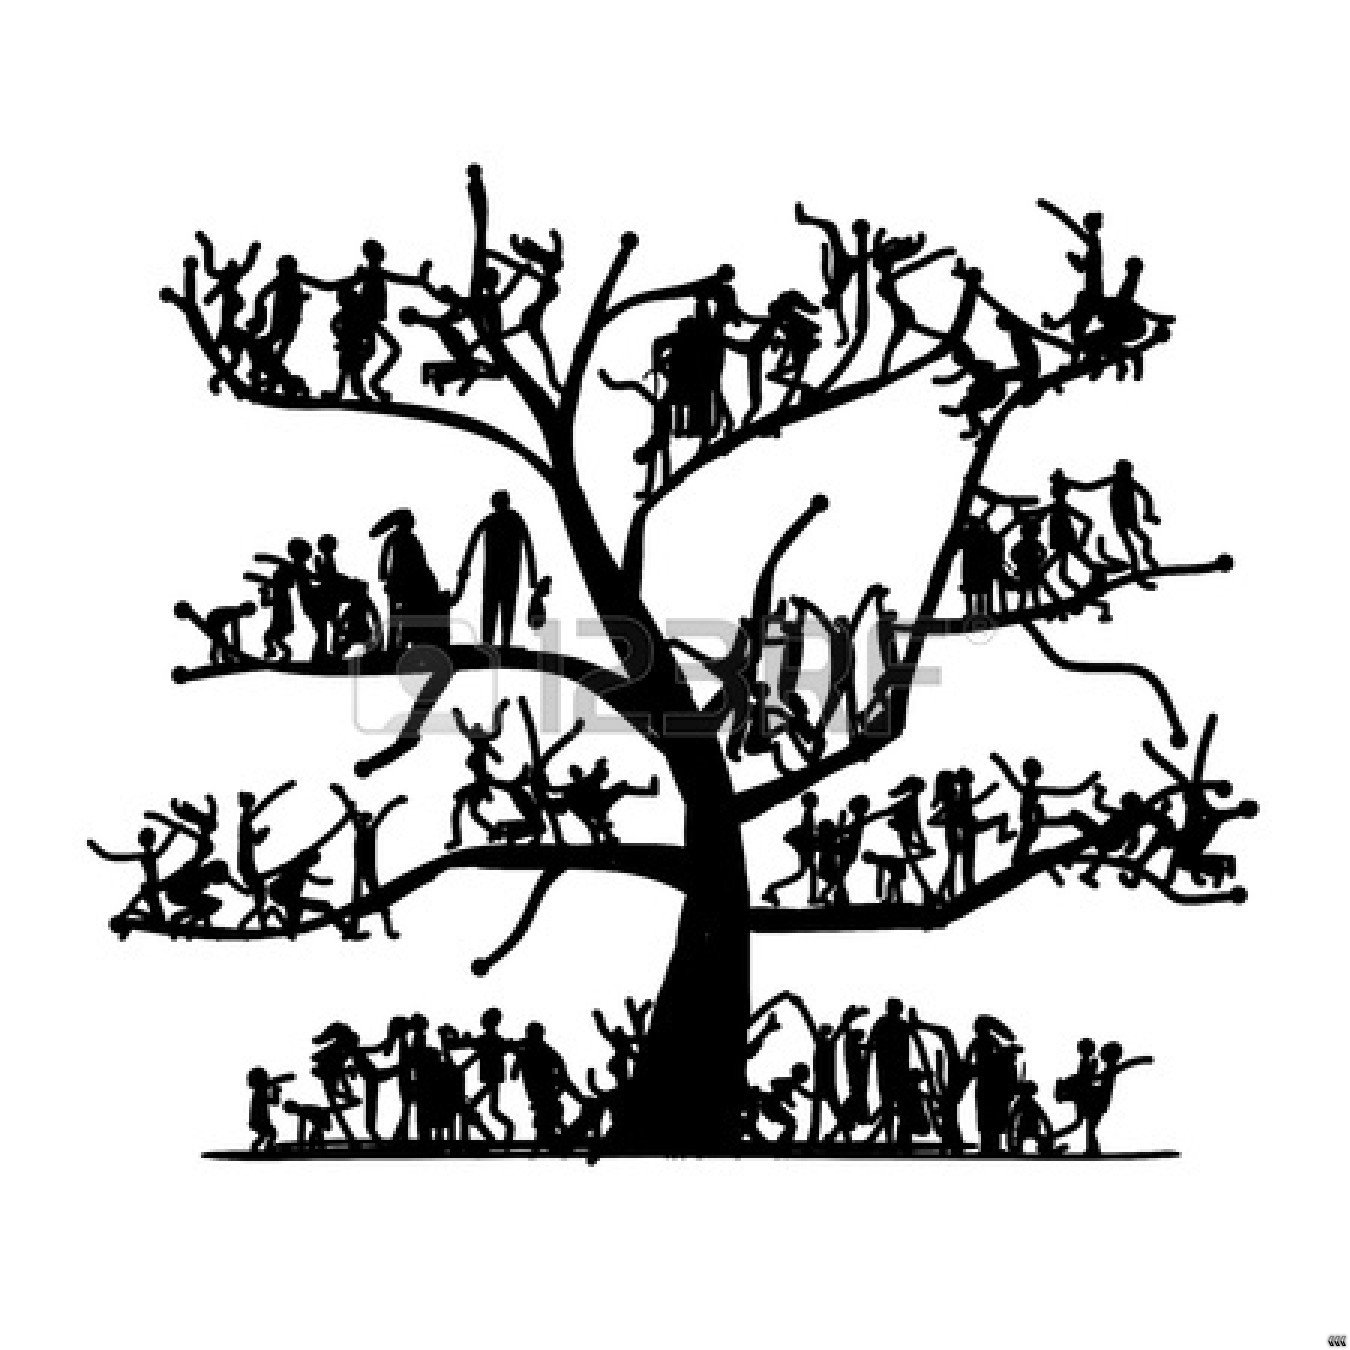 family tree clip art black and white clipart panda free clipart rh clipartpanda com planting trees clipart black and white tree clip art black and white no leaves